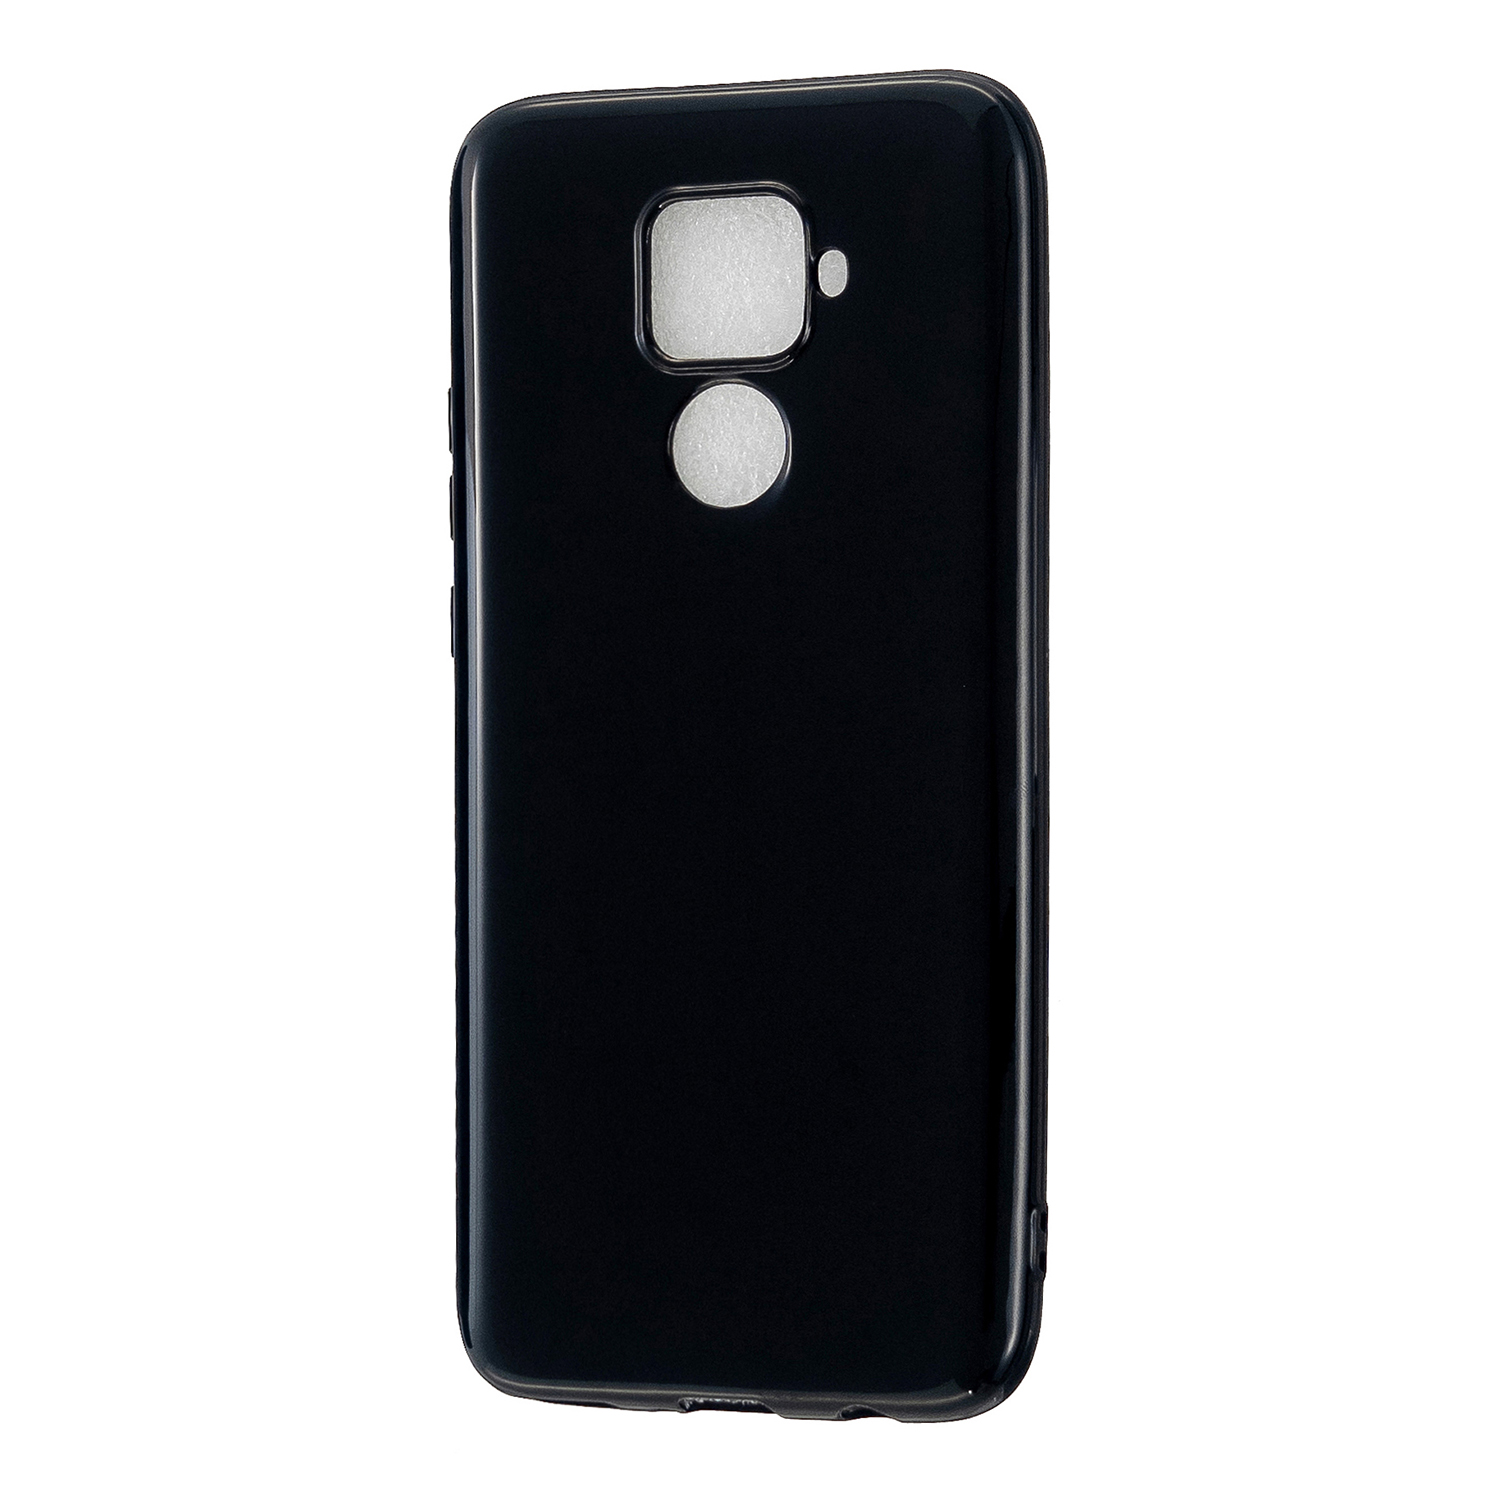 For HUAWEI Mate 30/30 Lite/30 Pro Cellphone Case Simple Profile Soft TPU Shock-Absorption Phone Cover Bright black